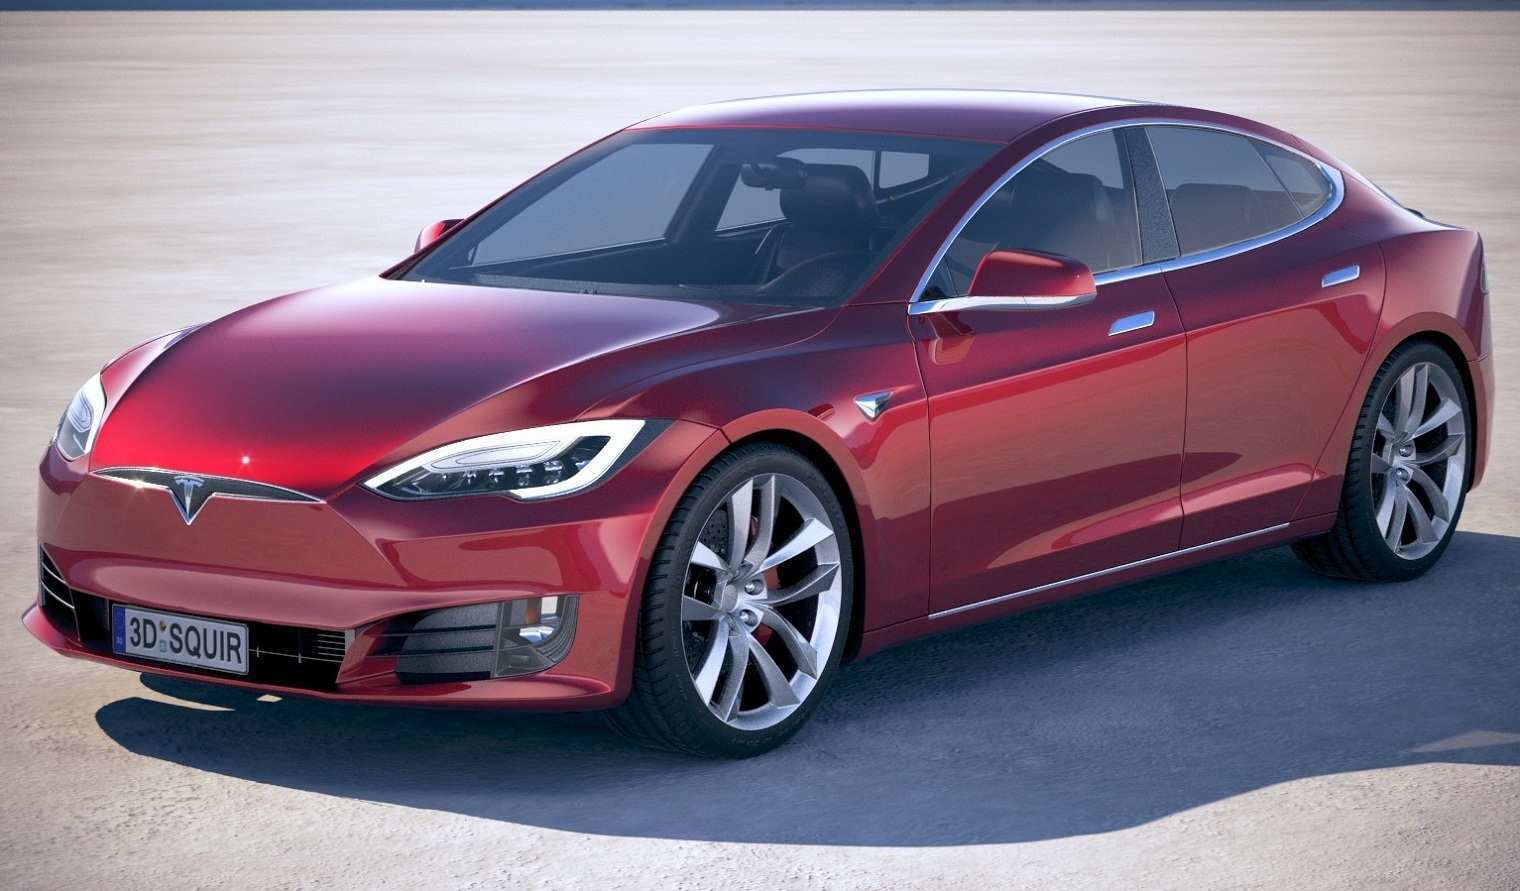 19 New Tesla S 2019 History by Tesla S 2019